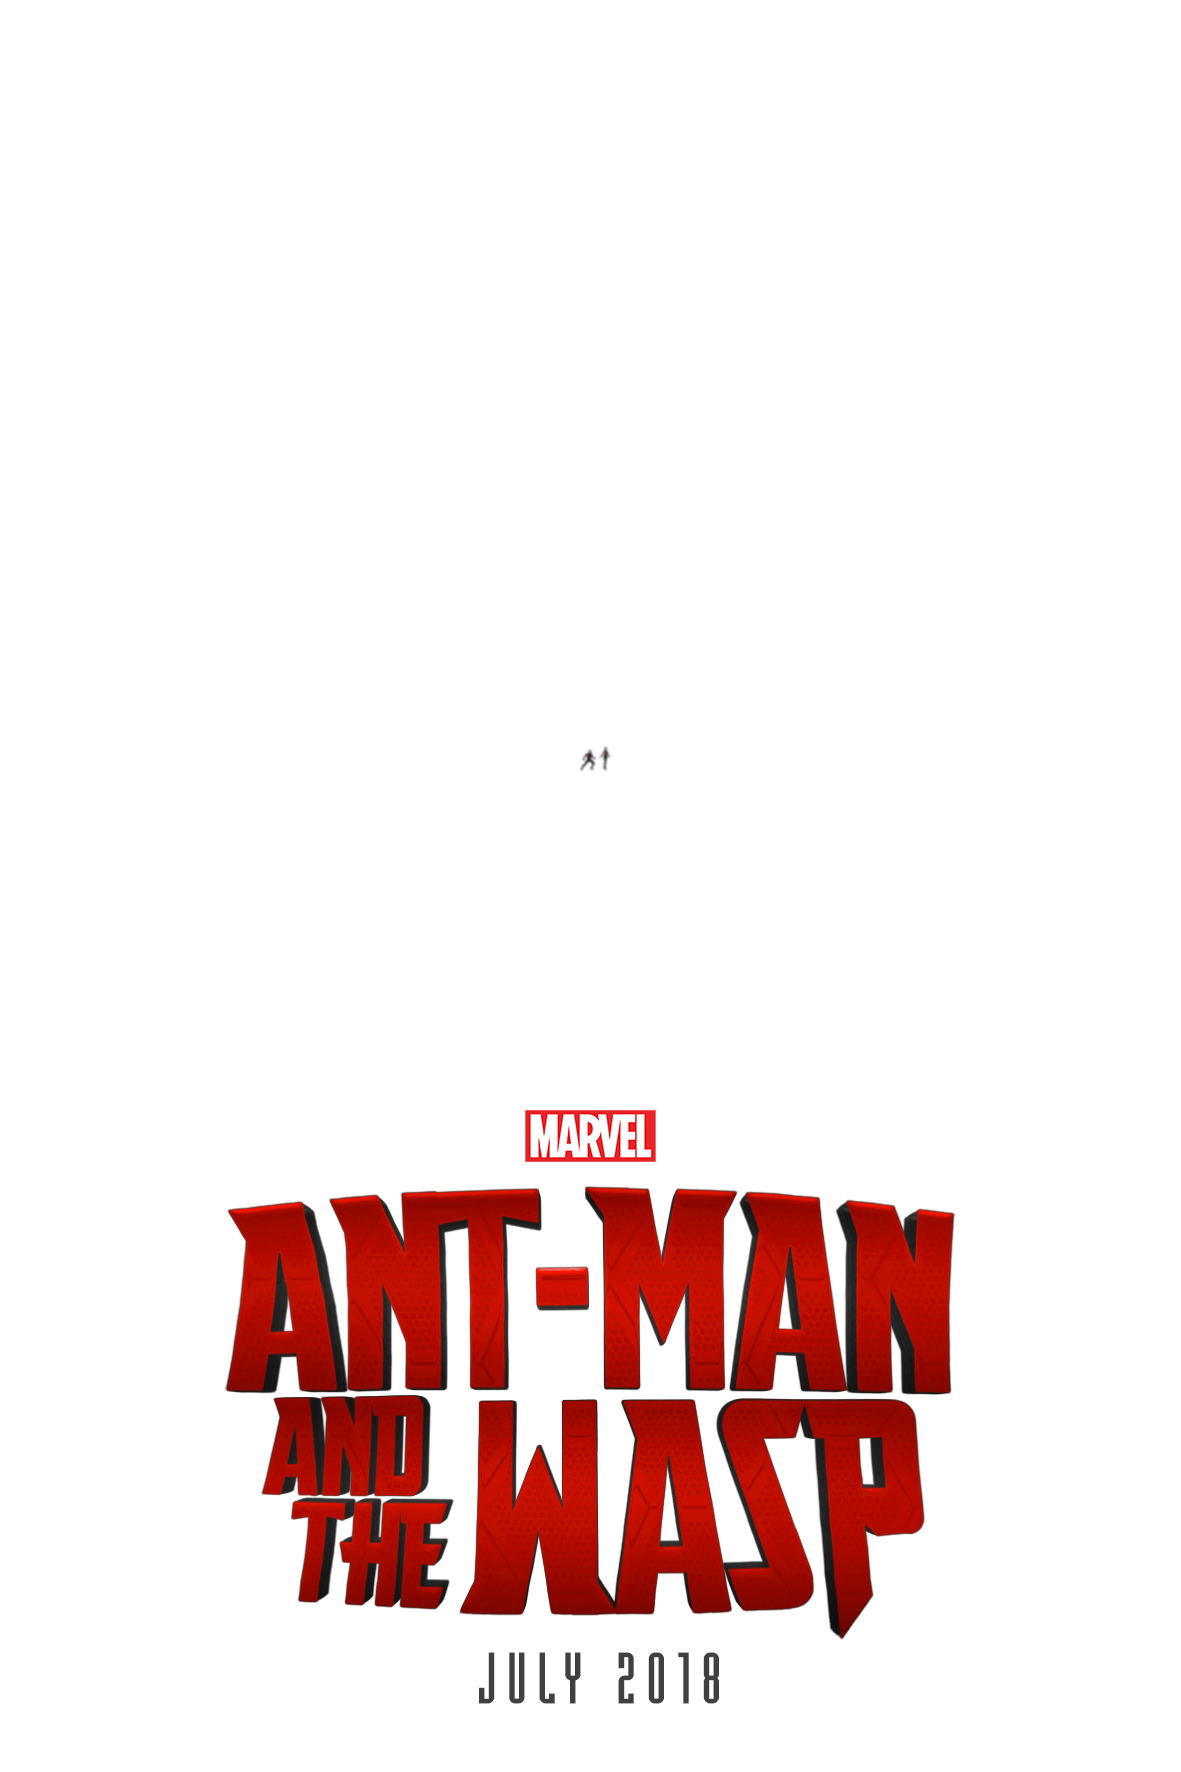 Ant Man And The Wasp Poster On Behance